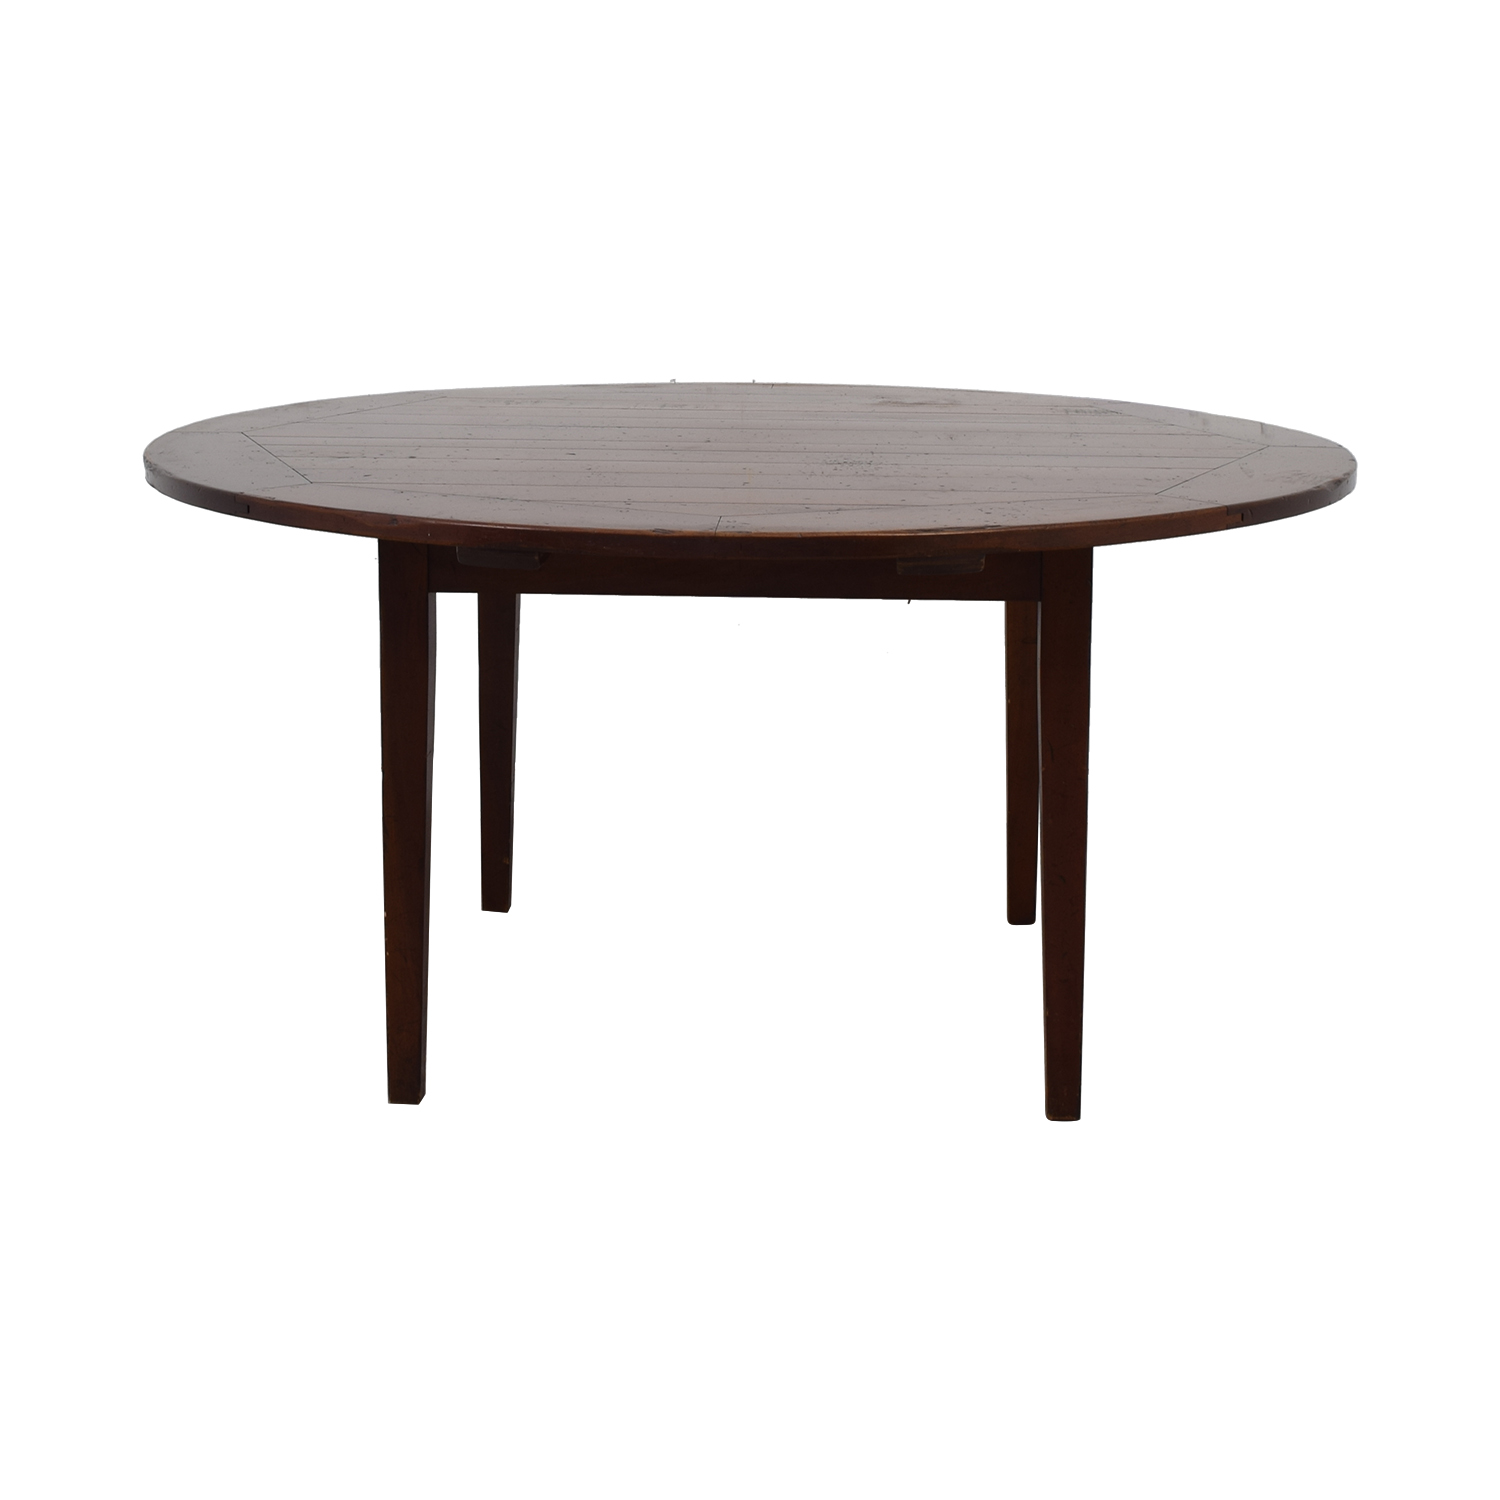 Rustic Round Wood Dining Table discount